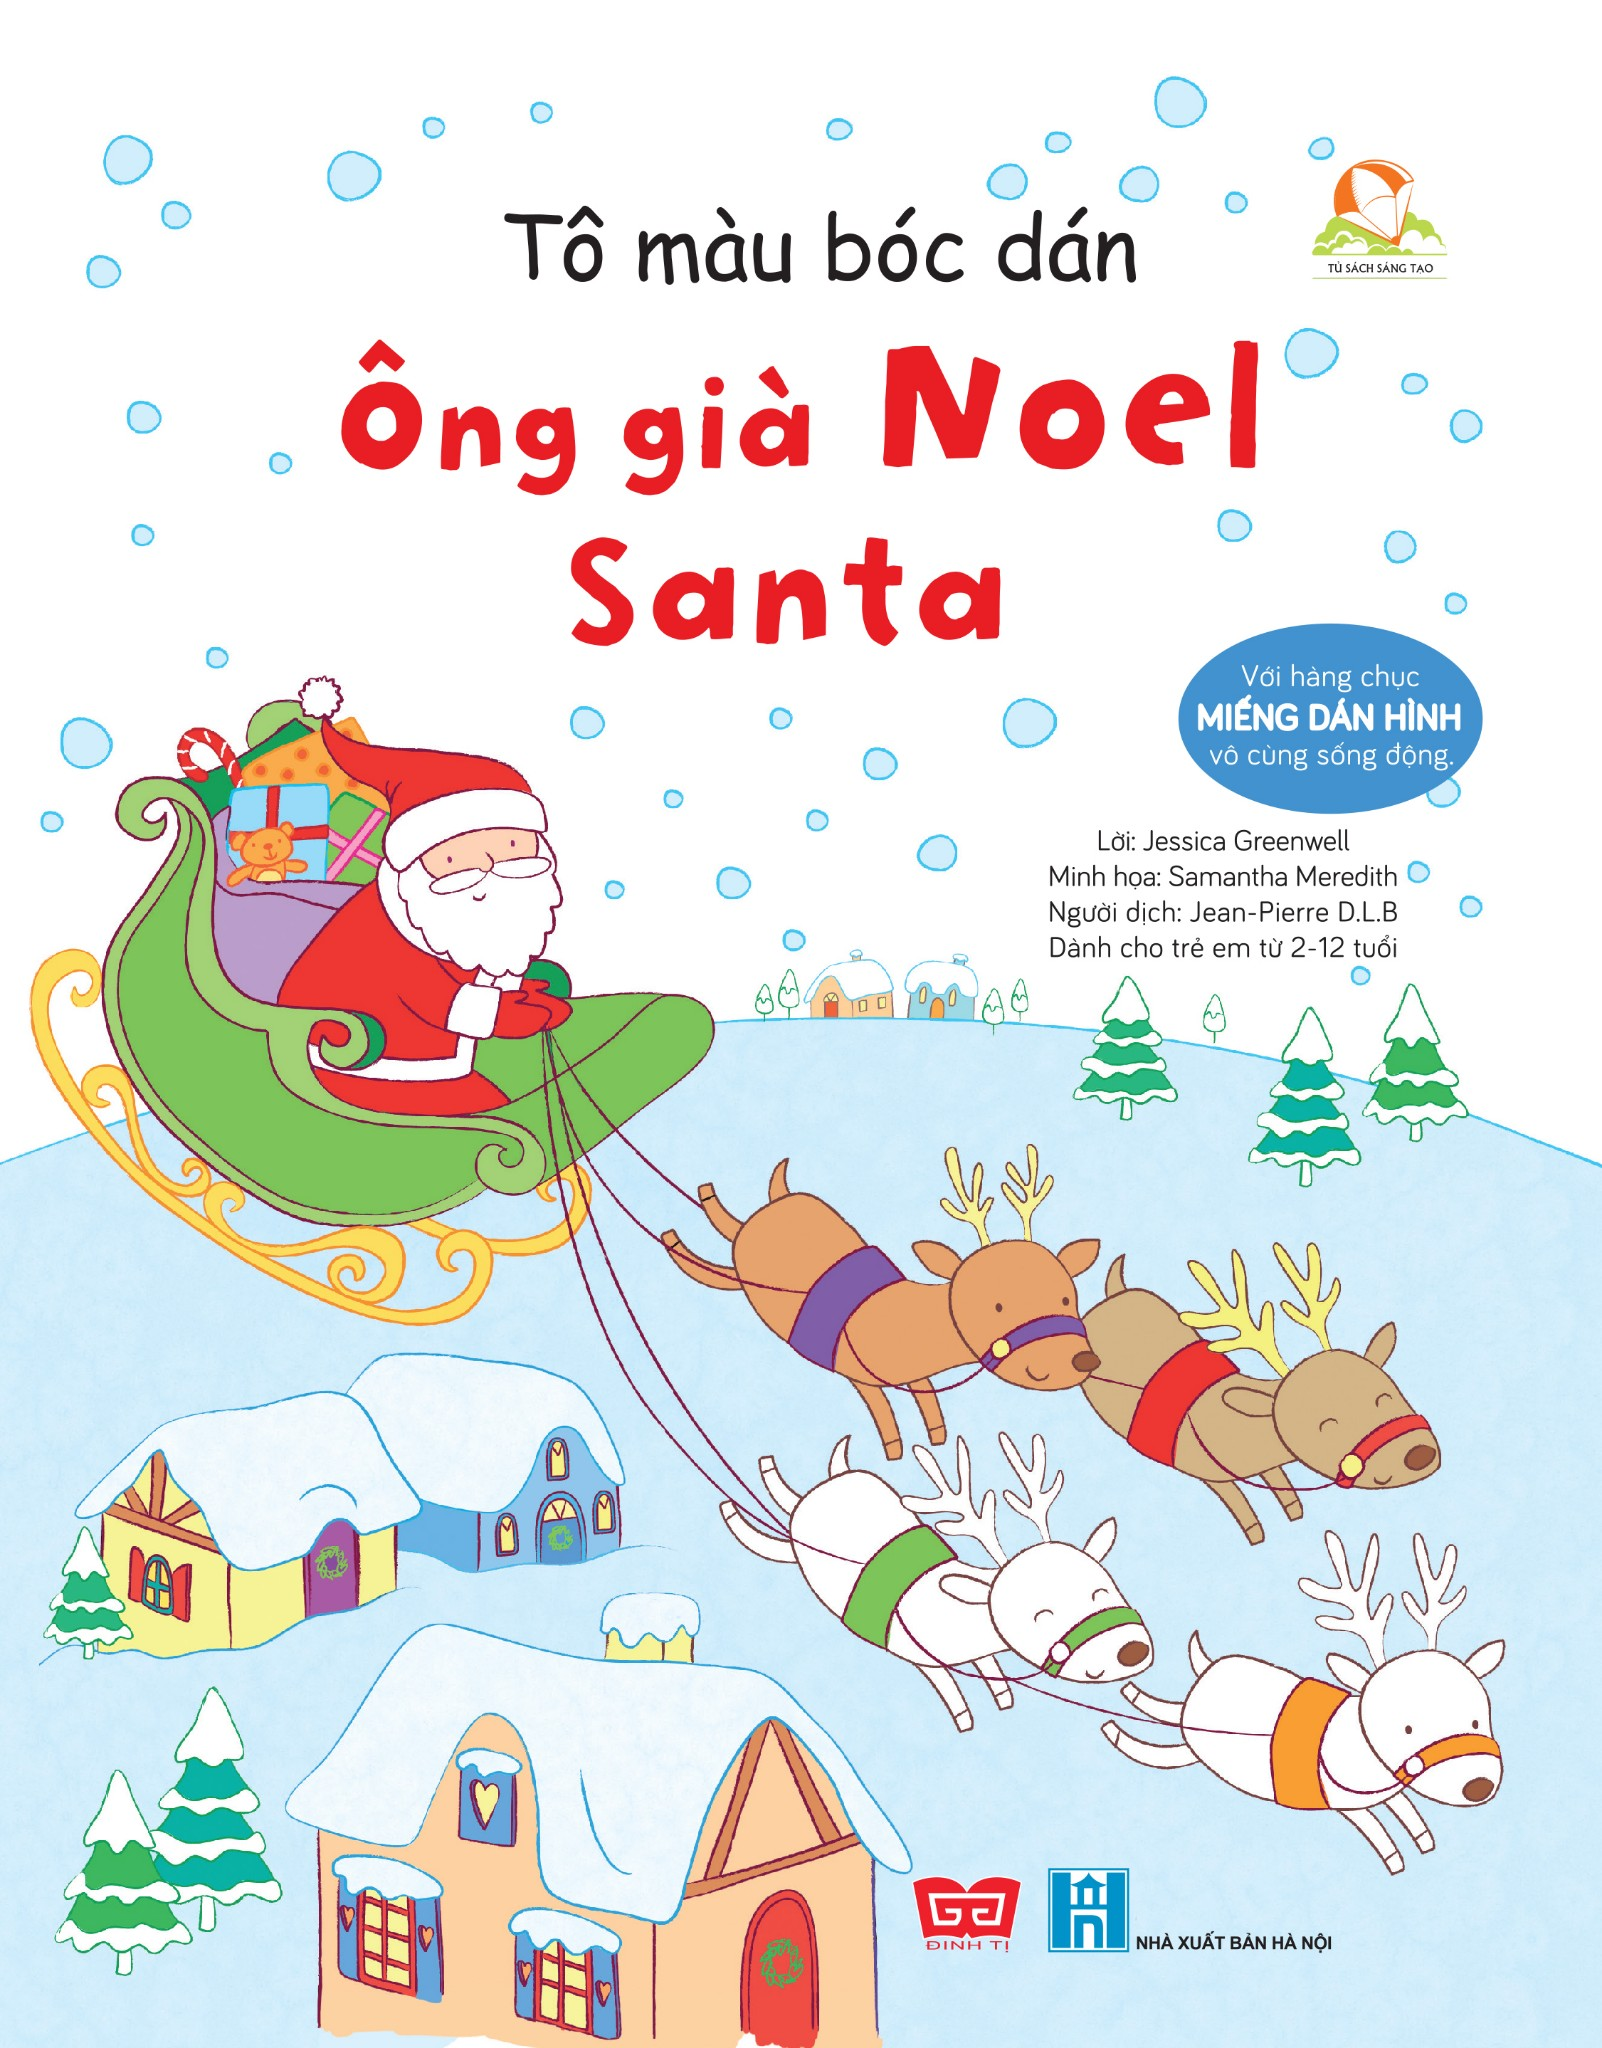 Tô màu bóc dán - Ông già Noel - Santa